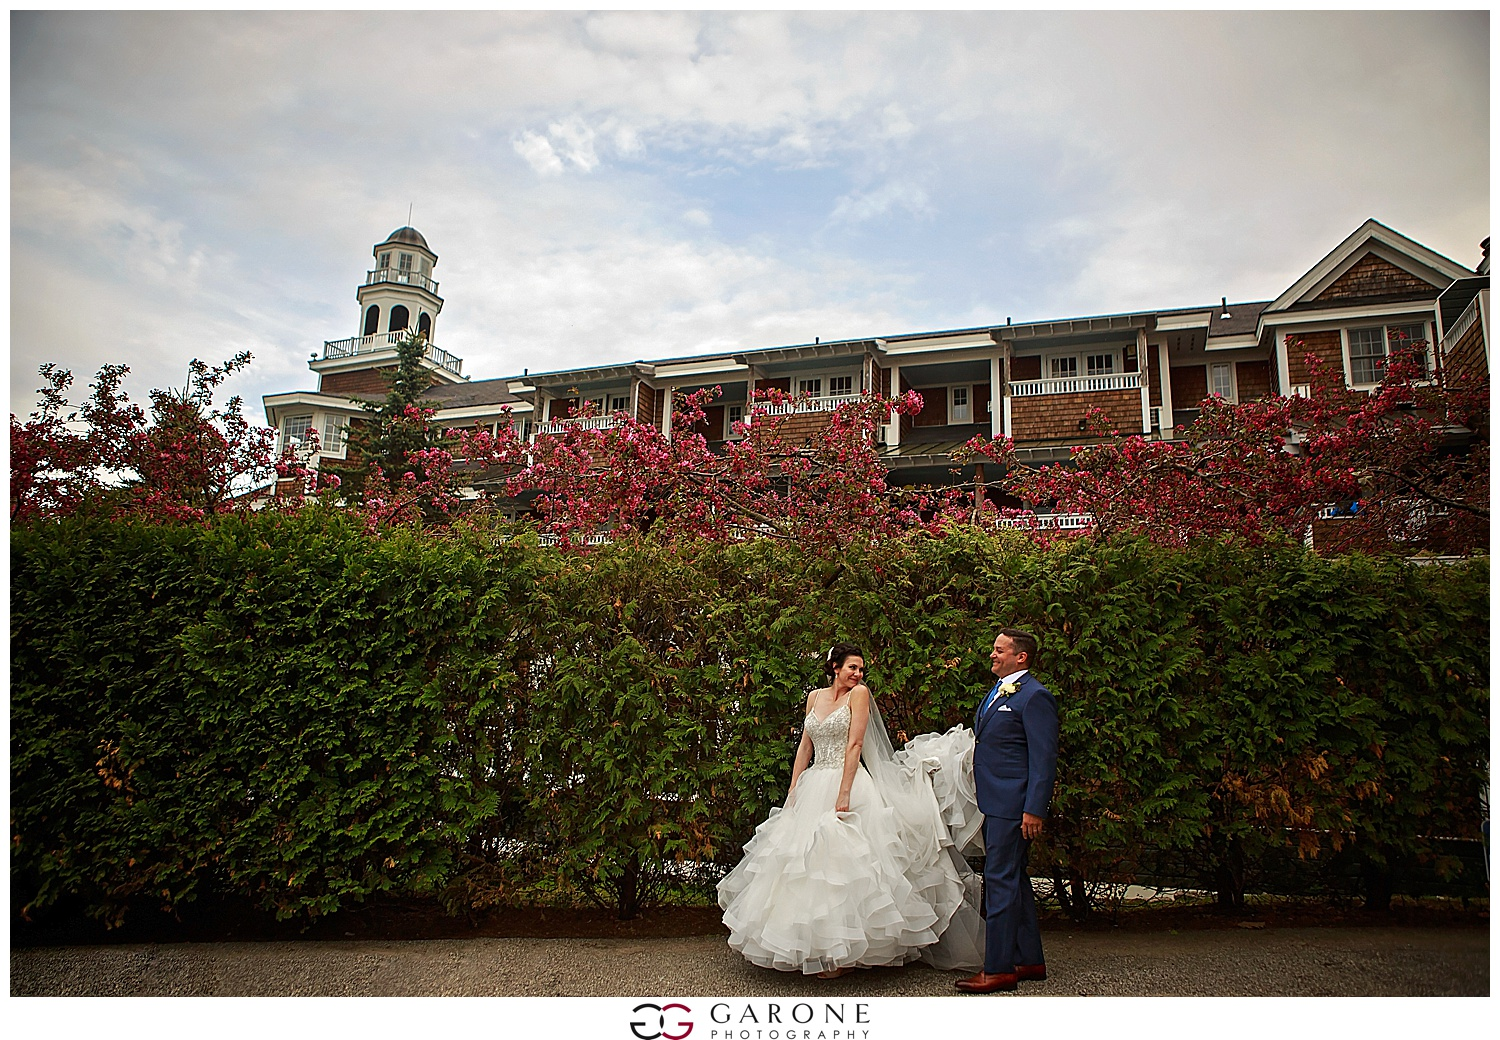 Shauna_Nathan_Carriage_House_Chuch_Landing_Lake_Winnapausakee_Wedding_0029.jpg